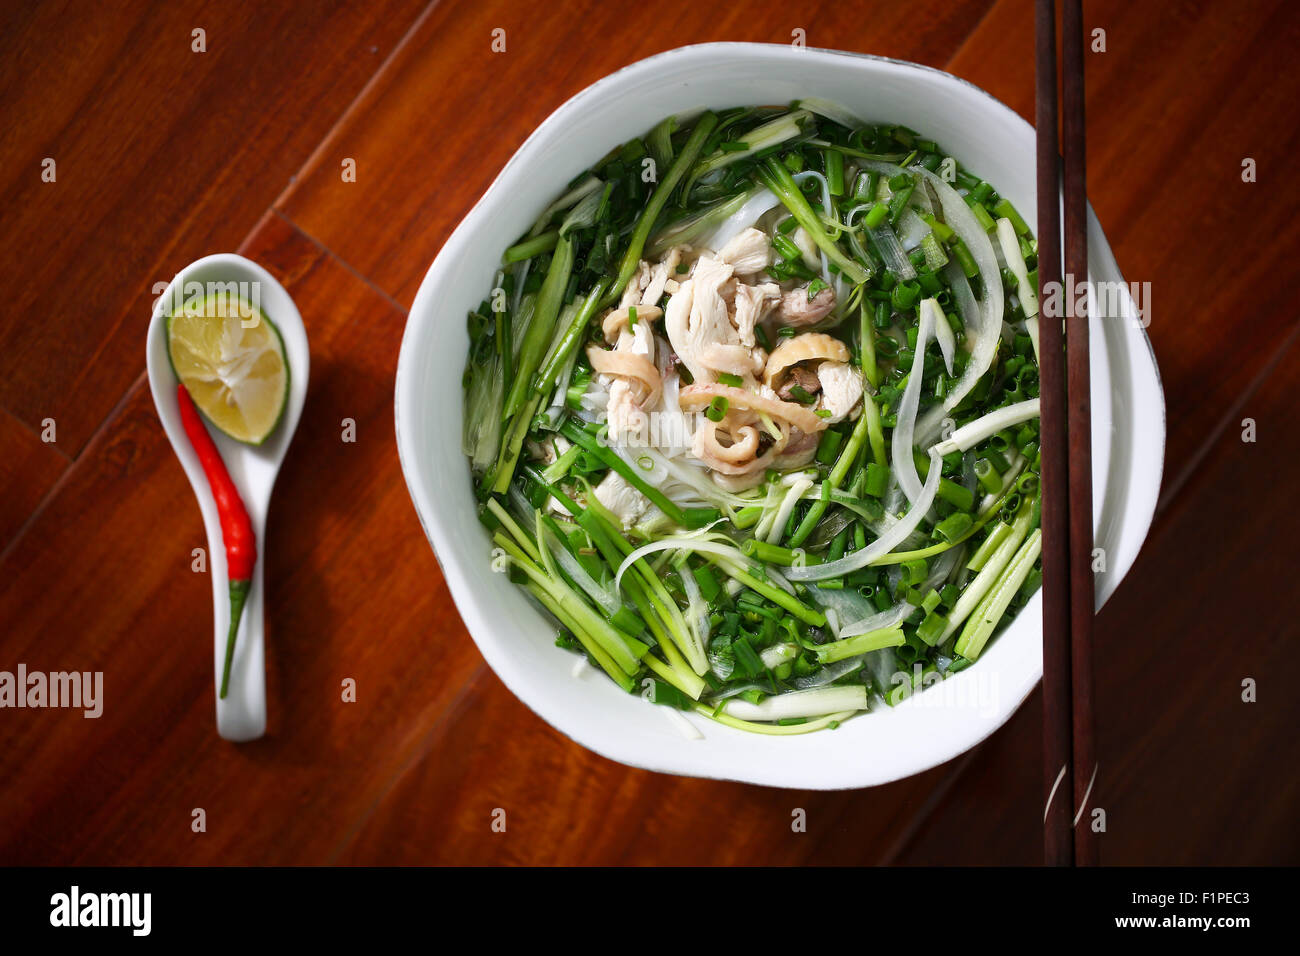 Stock Photo - Pho, a traditional Vietnamese gourmet food, in a closeup view